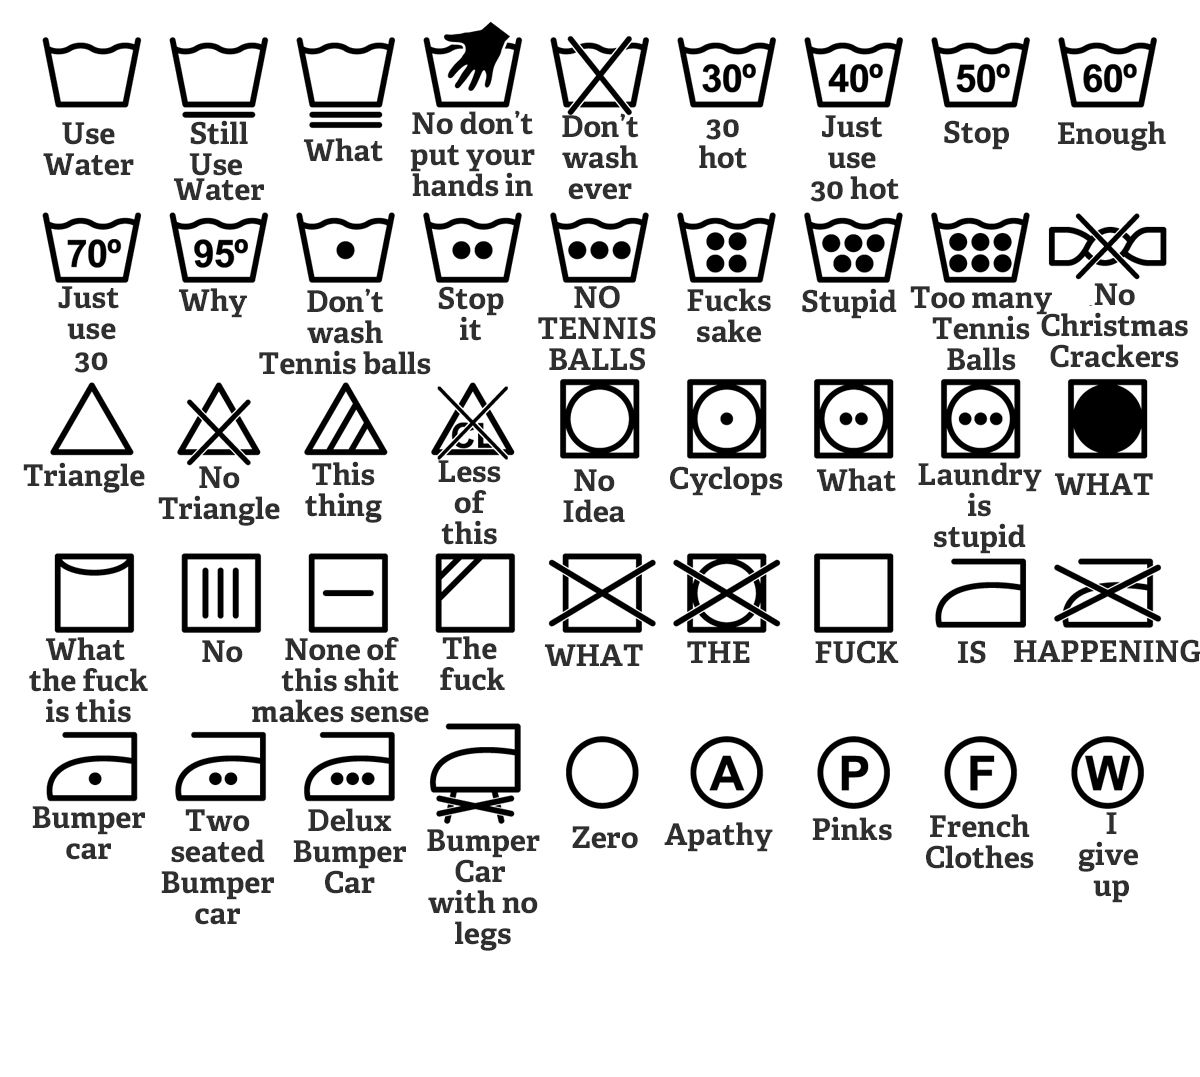 Too many tennis ballsurce sassy time wasting pinterest a simple guide to fabric care symbolsdug this legend to the baffling pictographs on clothing care labels recently posted by technicallyron buycottarizona Gallery